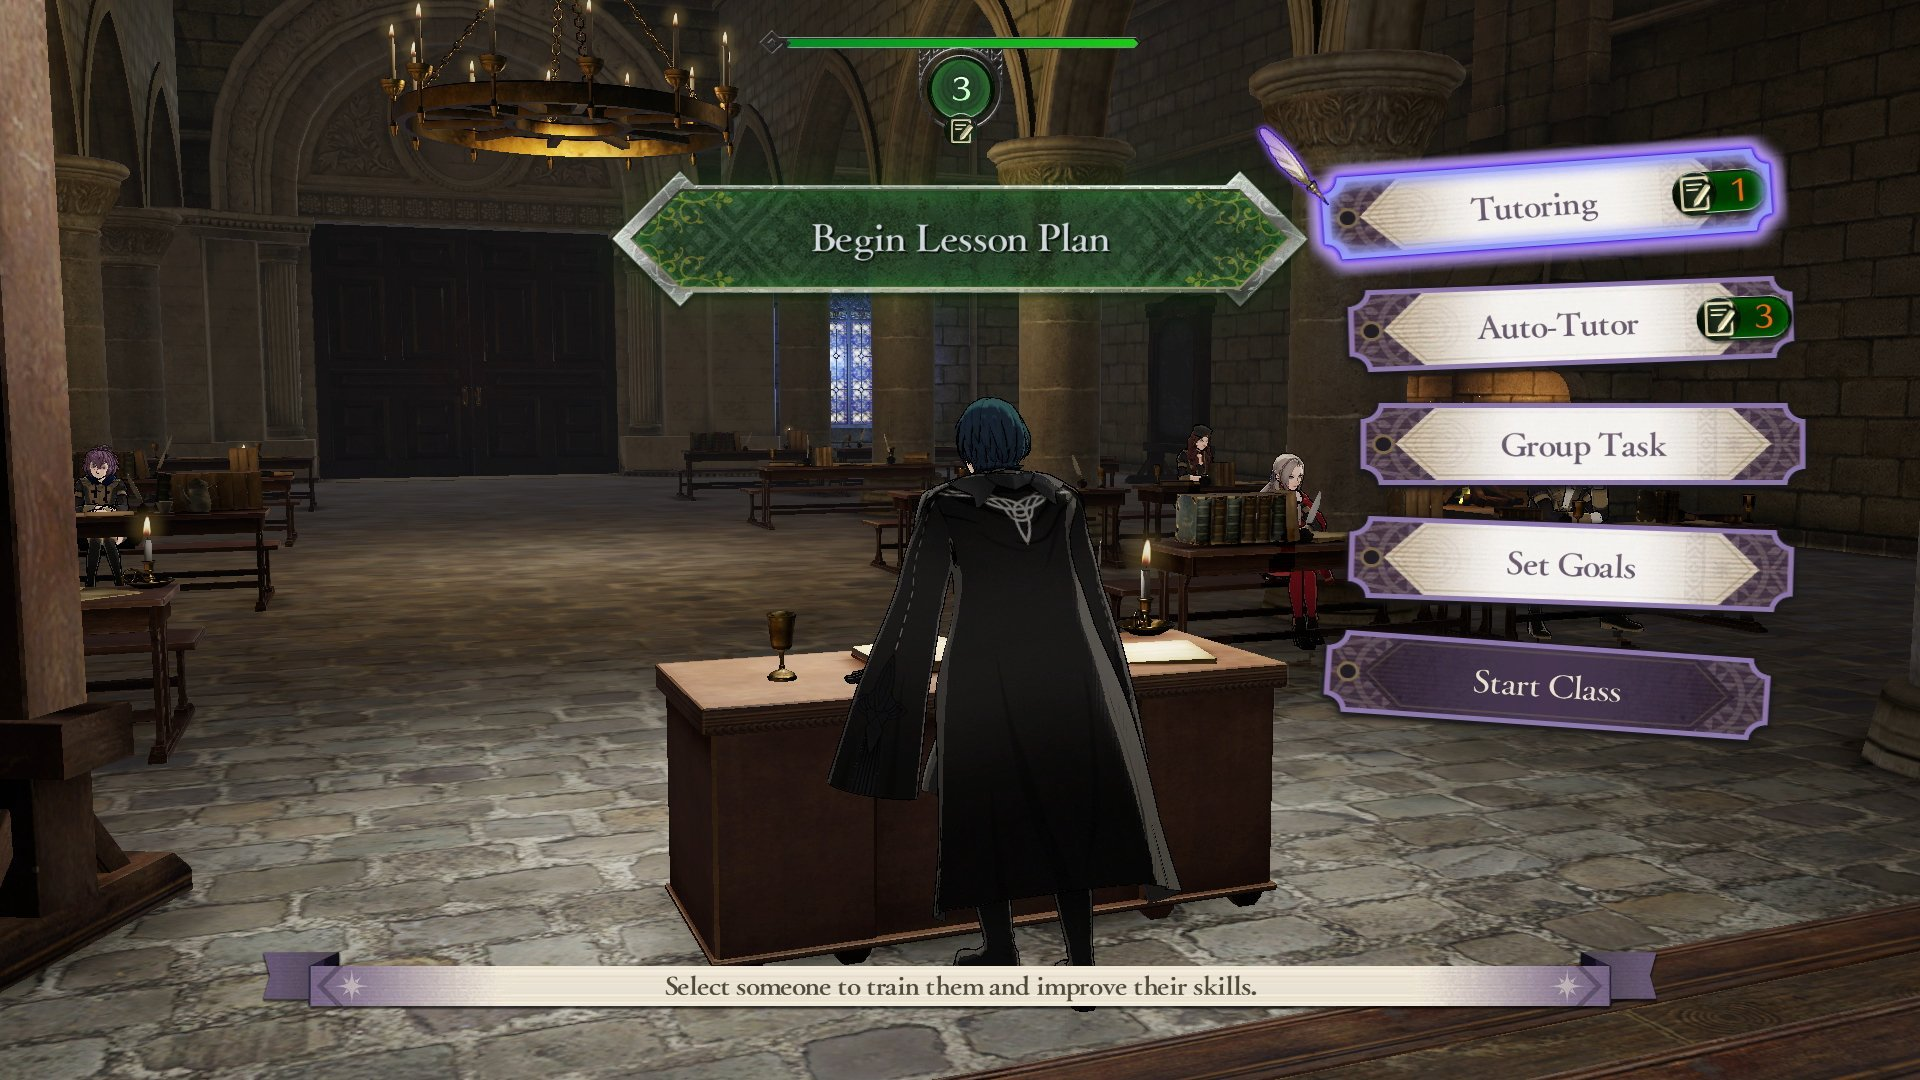 How long does it take to beat Fire Emblem: Three Houses?